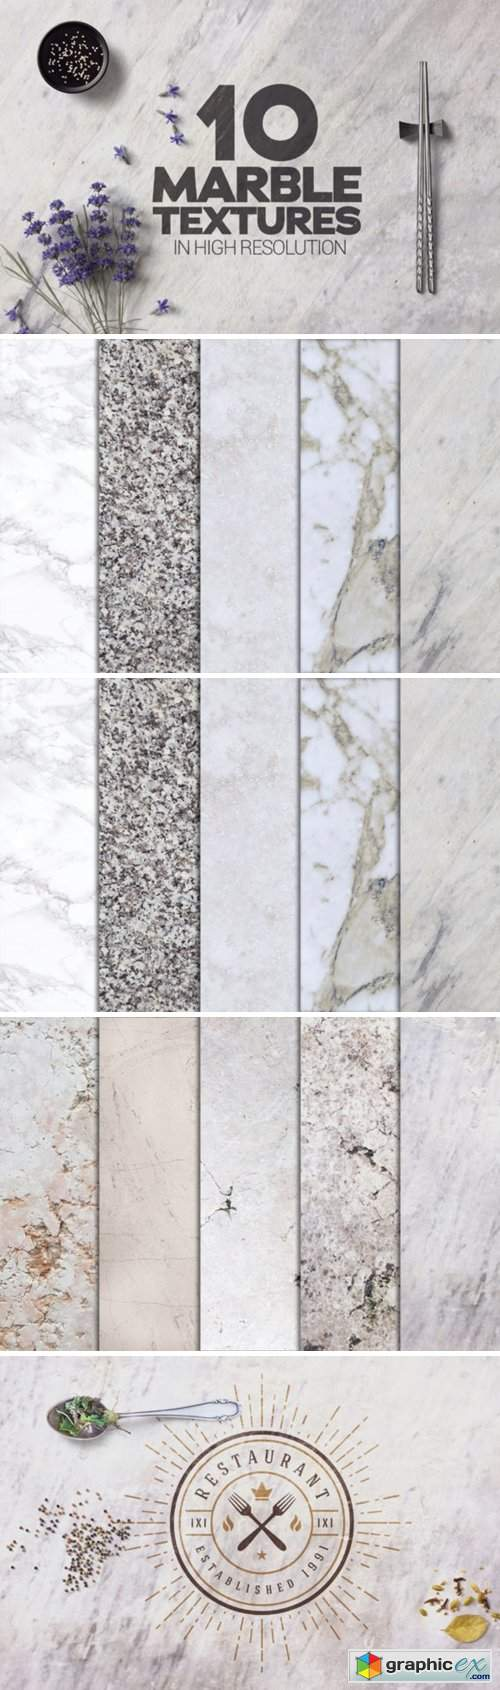 Marble Textures X10